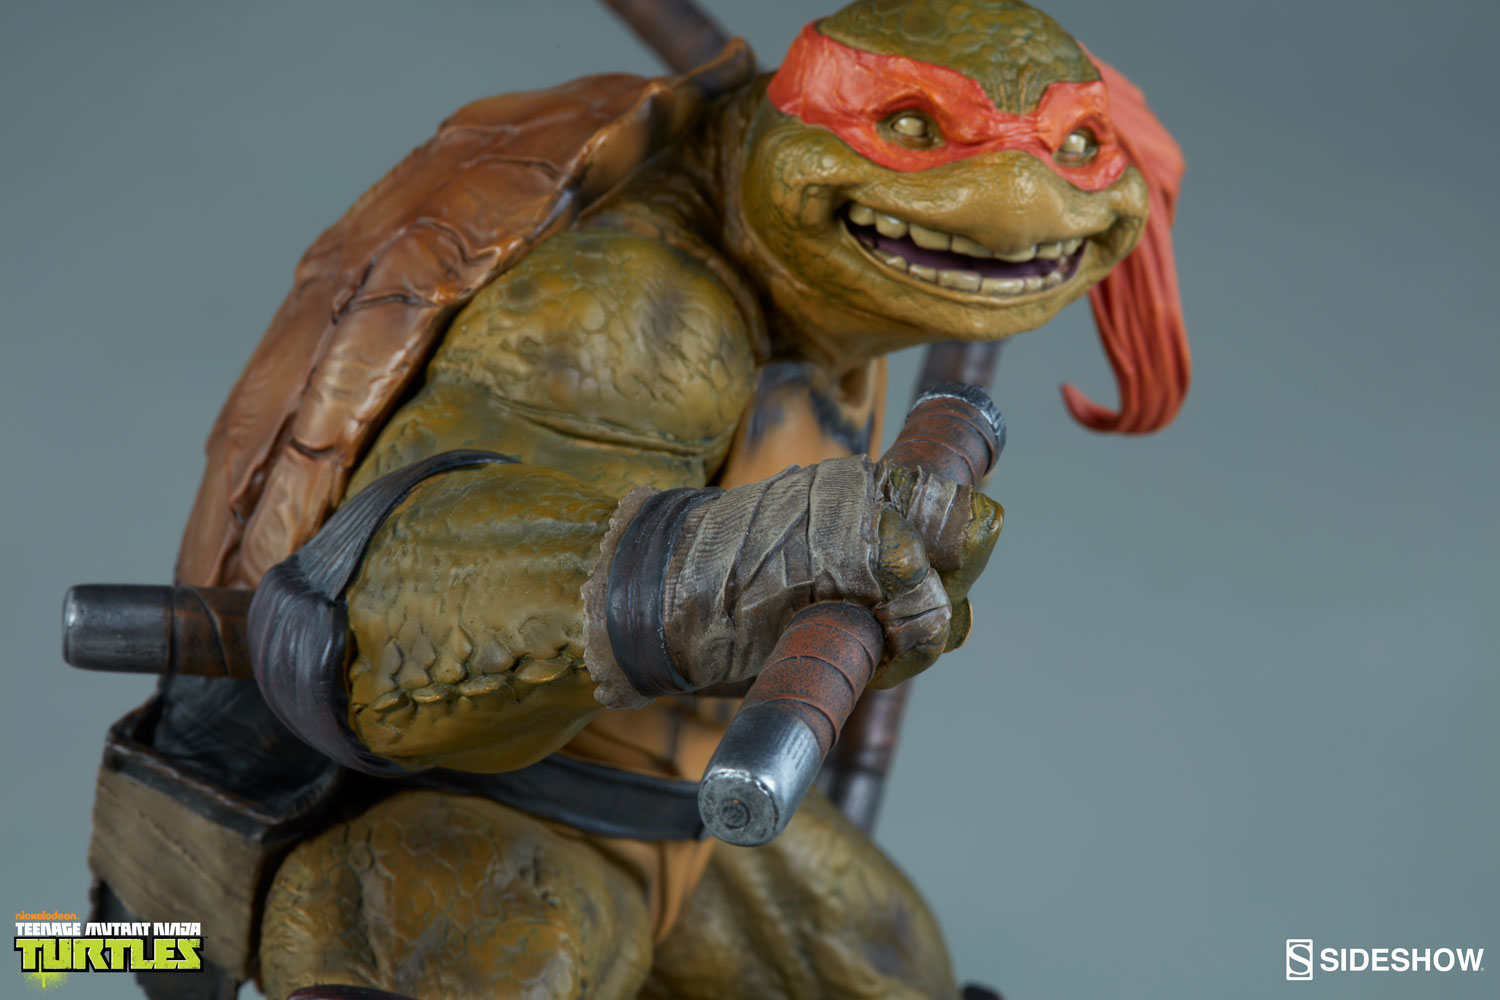 TMNT Michelangelo Statue By Sideshow Collectibles